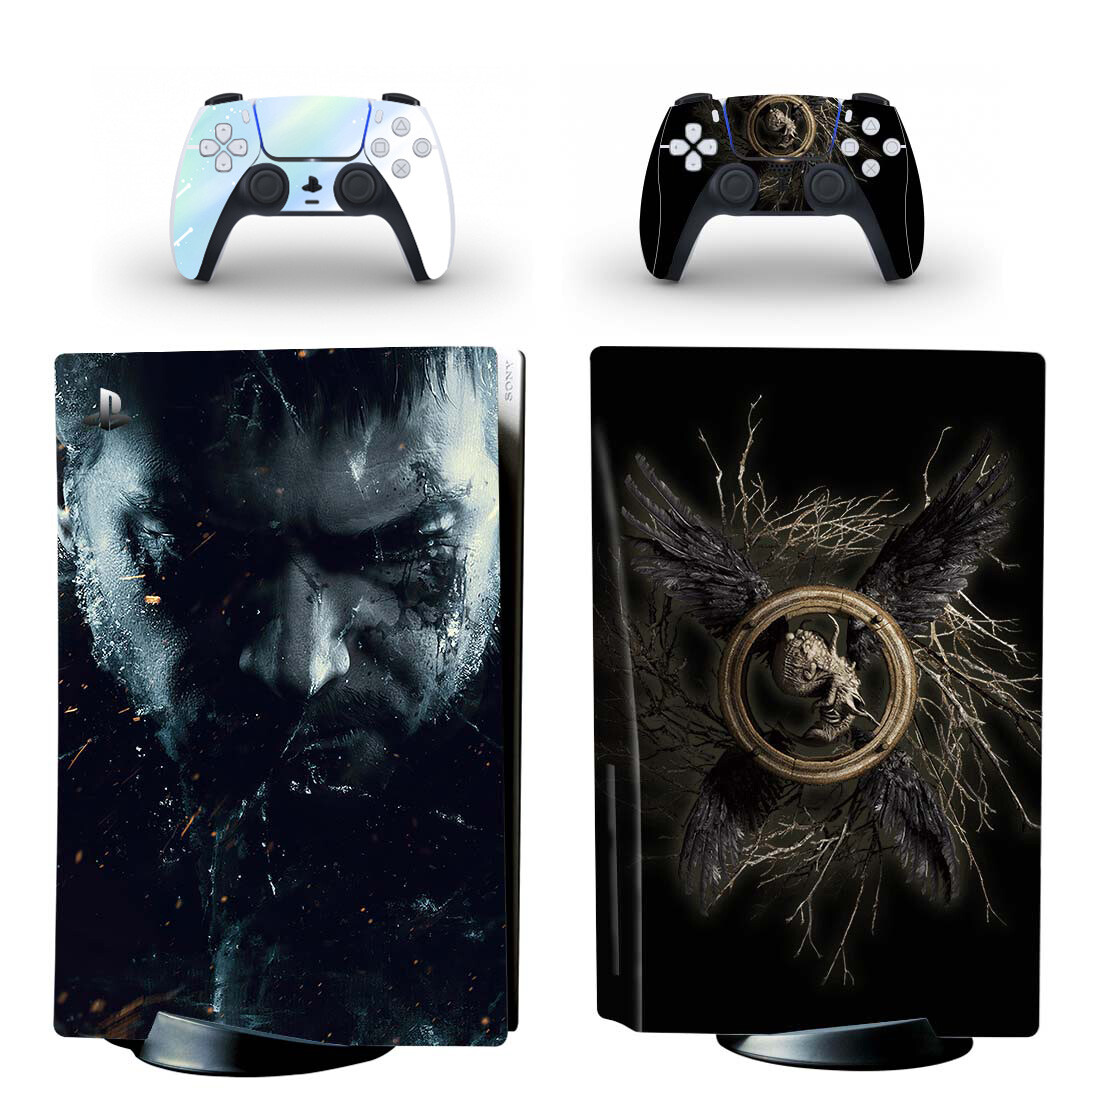 Resident Evil Village Skin Sticker For PlayStation 5 And Controllers